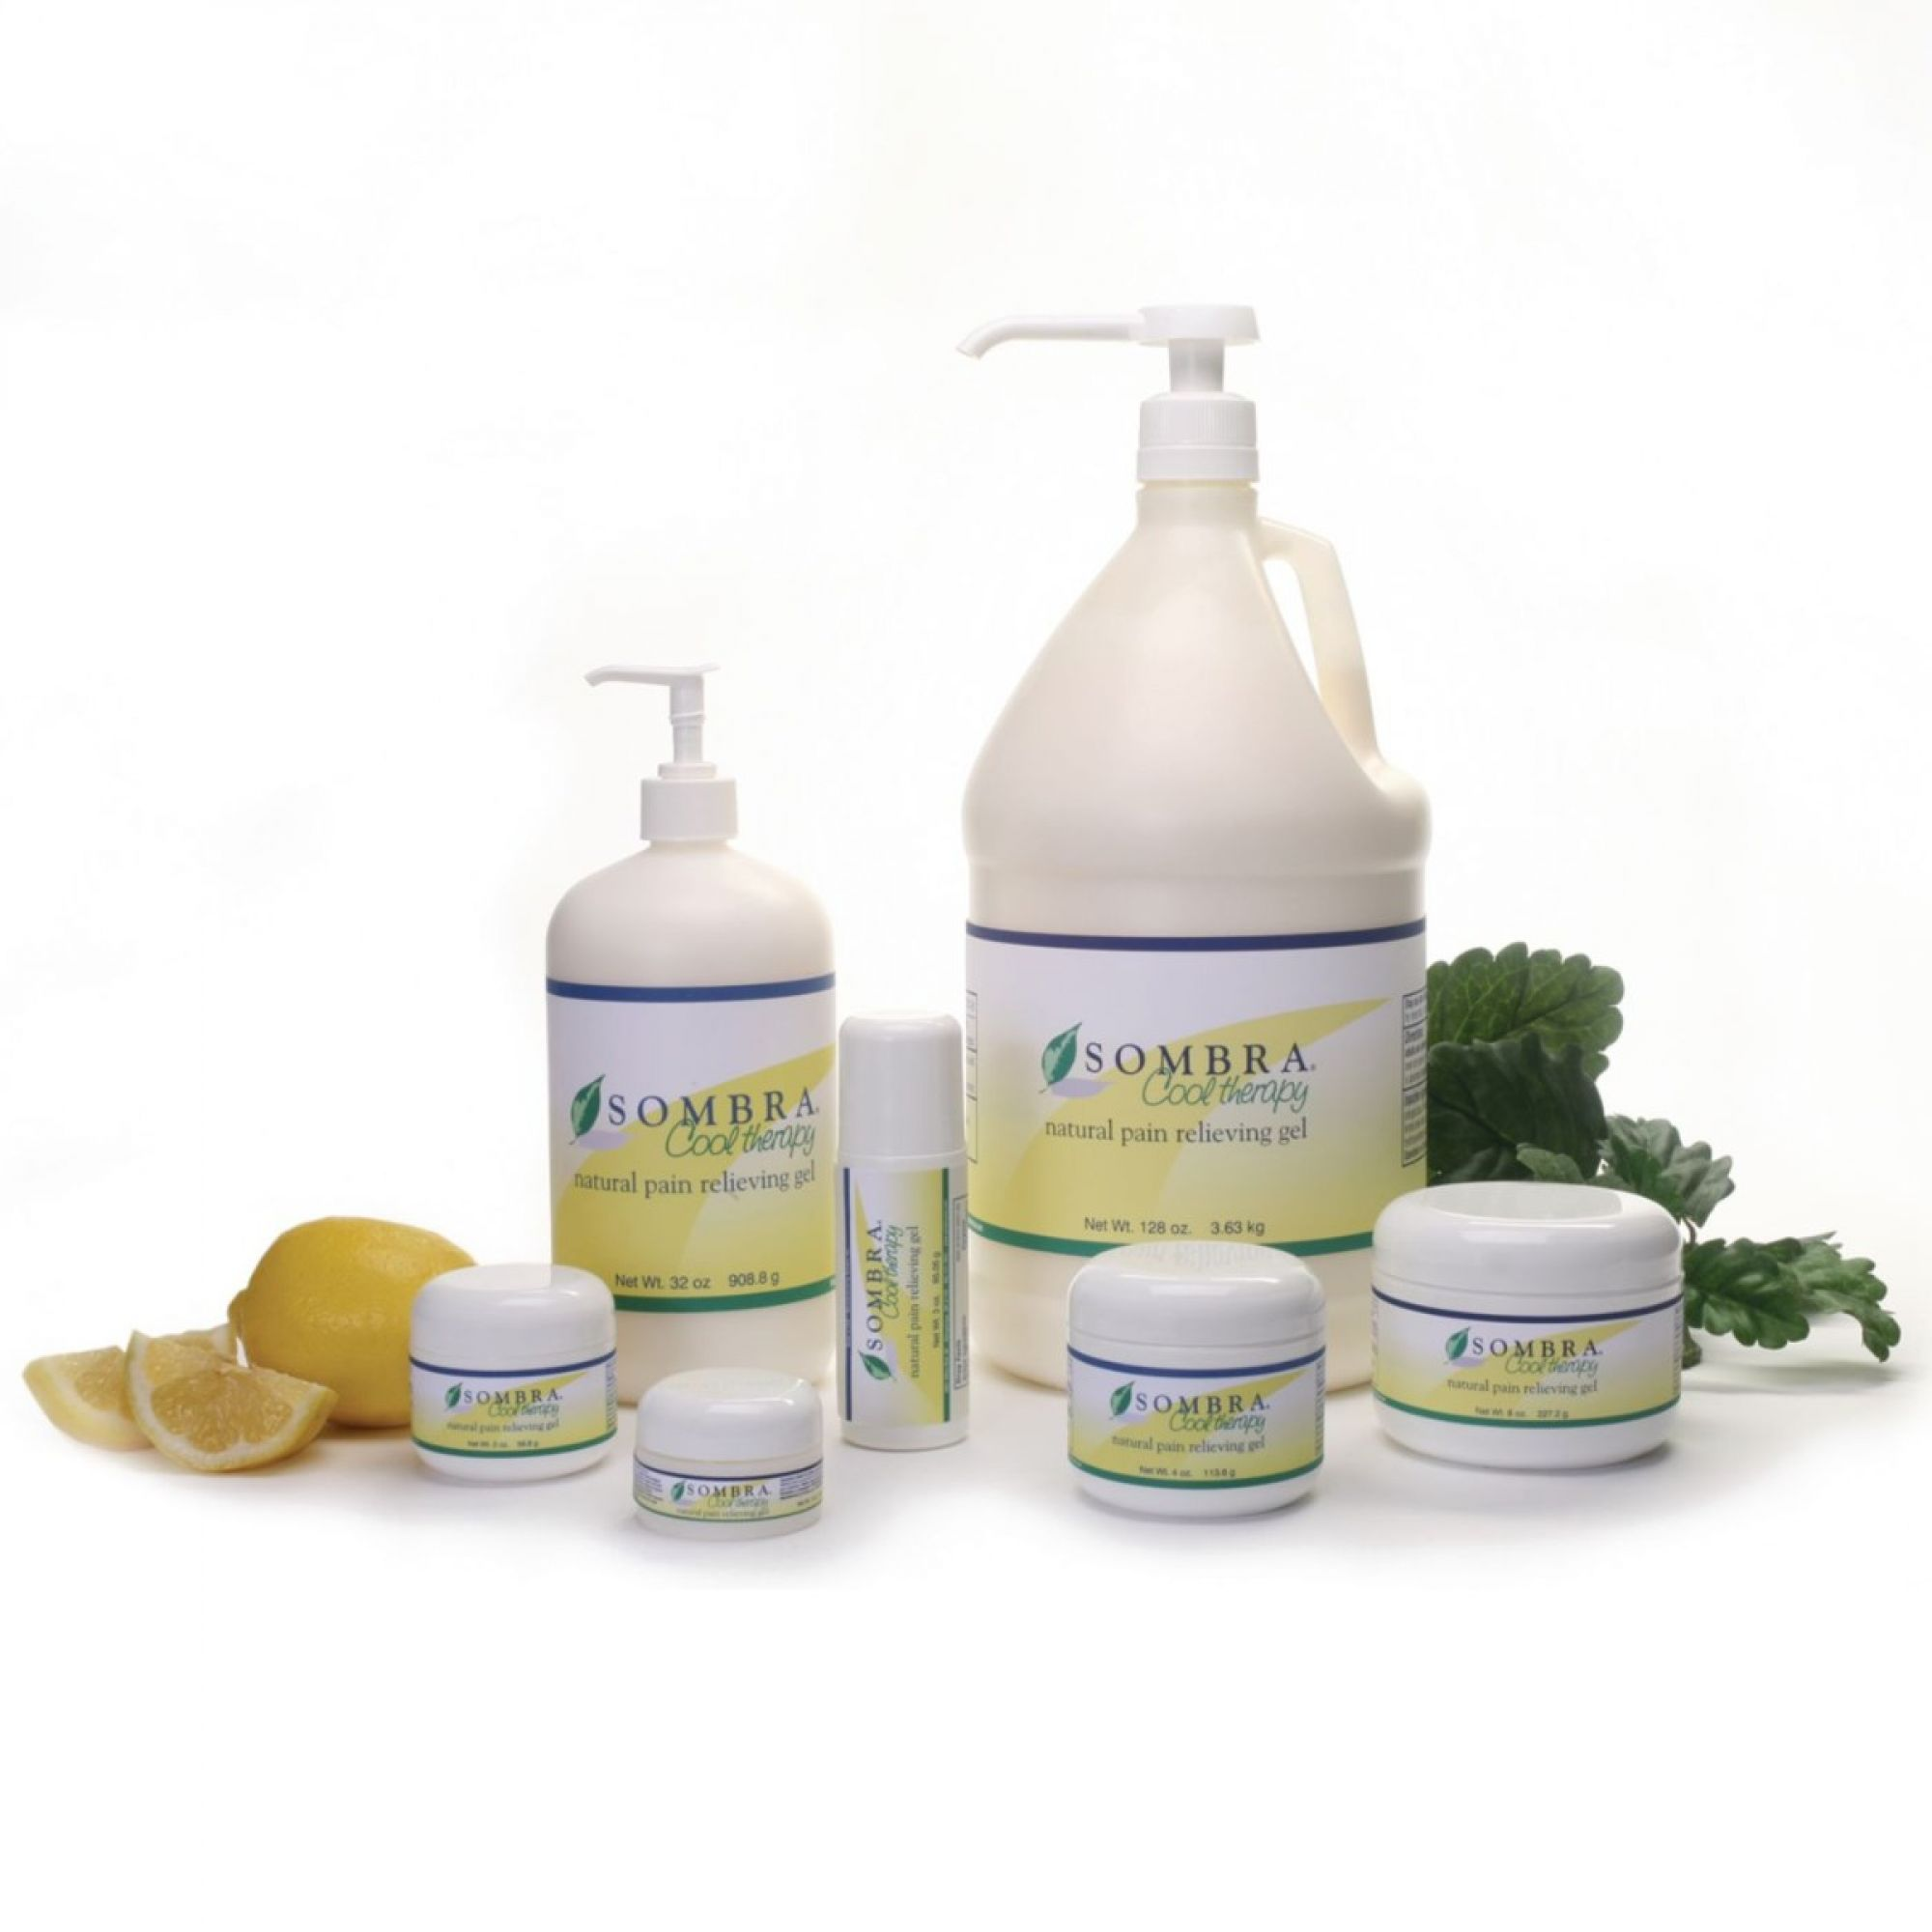 Sombra Cold Therapy - Natural Pain Relieving Gel